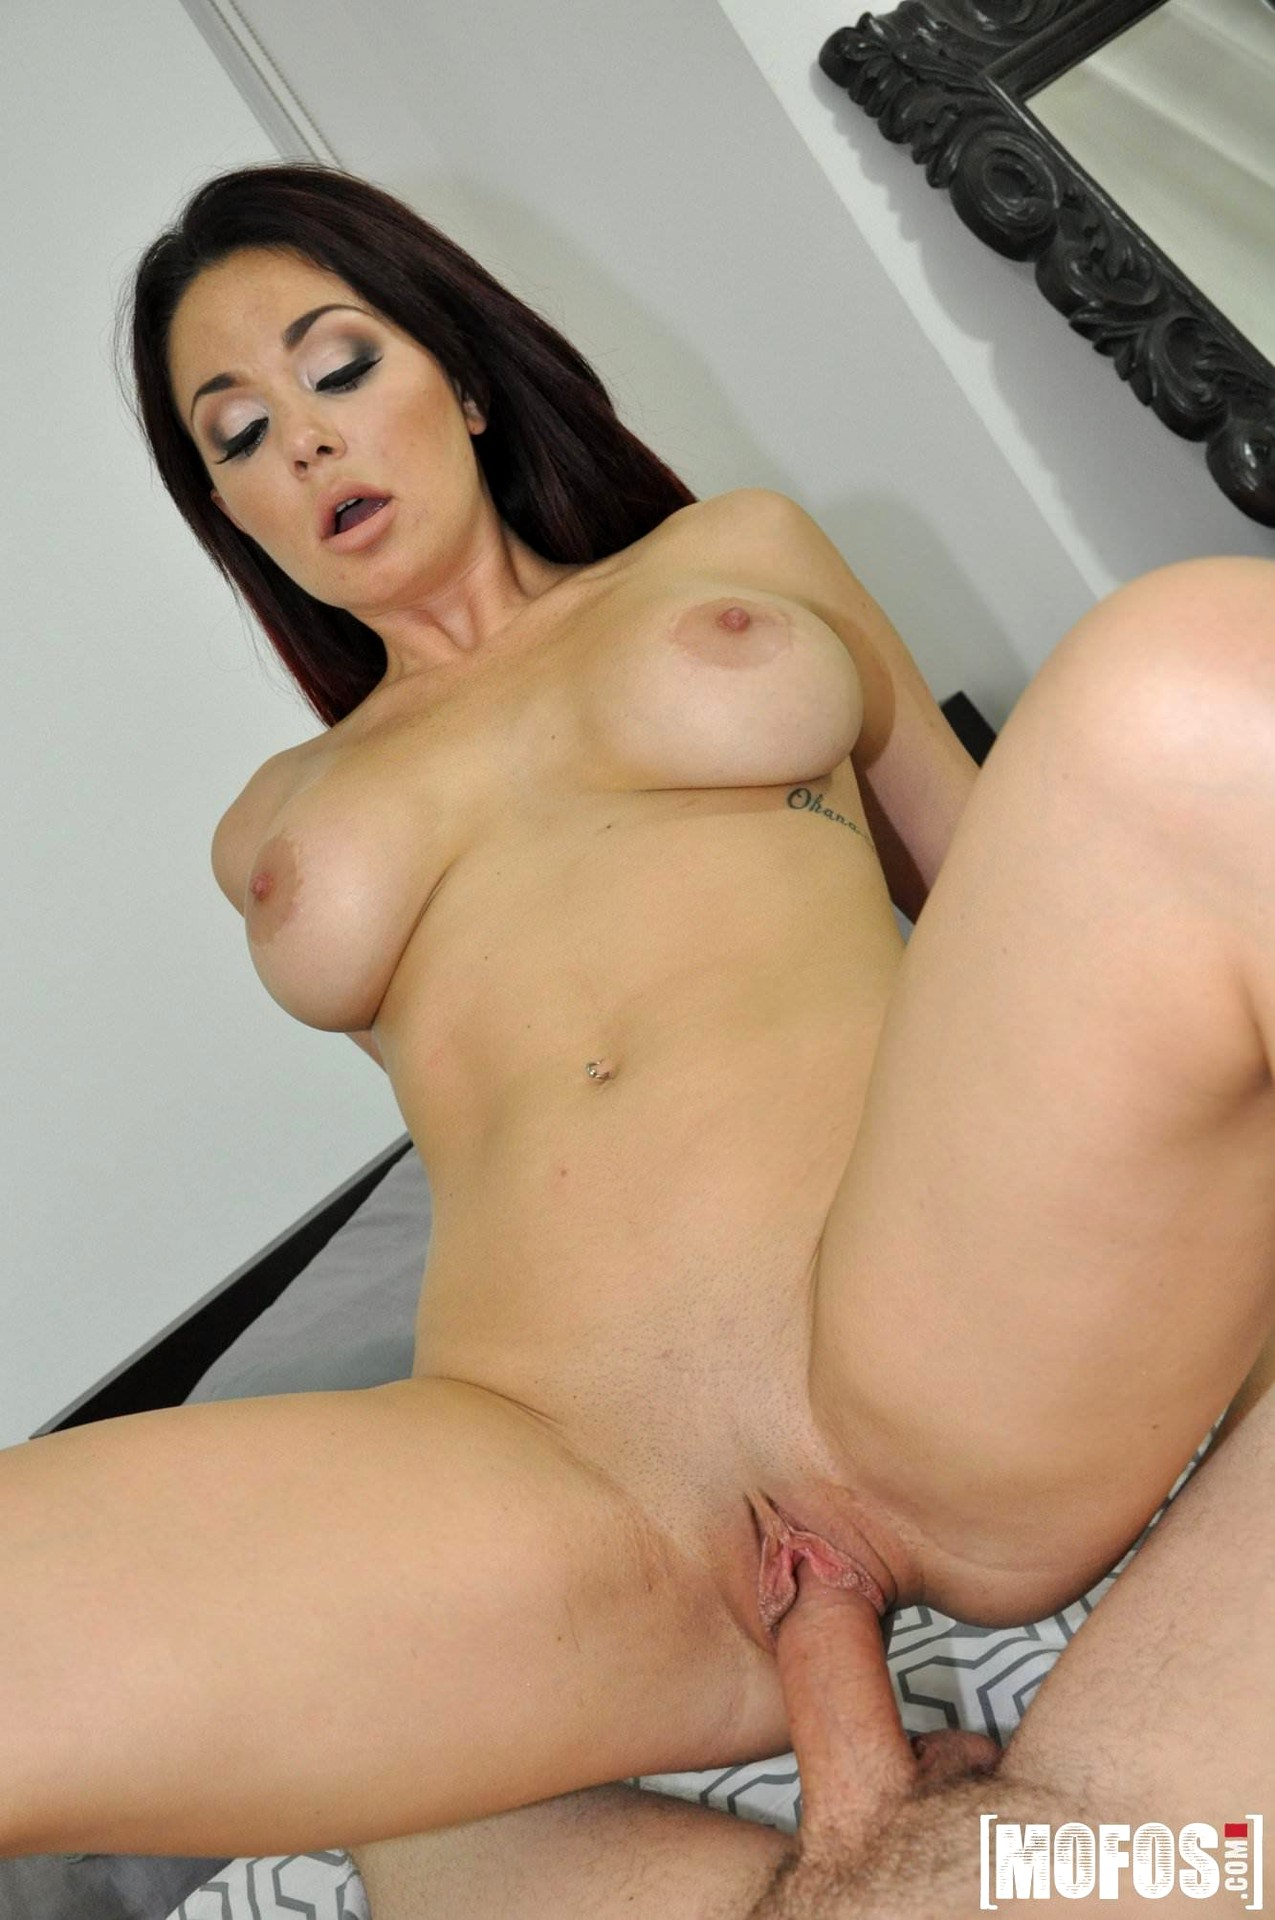 Babe Today Lets Try Anal Brooke Beretta Exchange Anal -5437